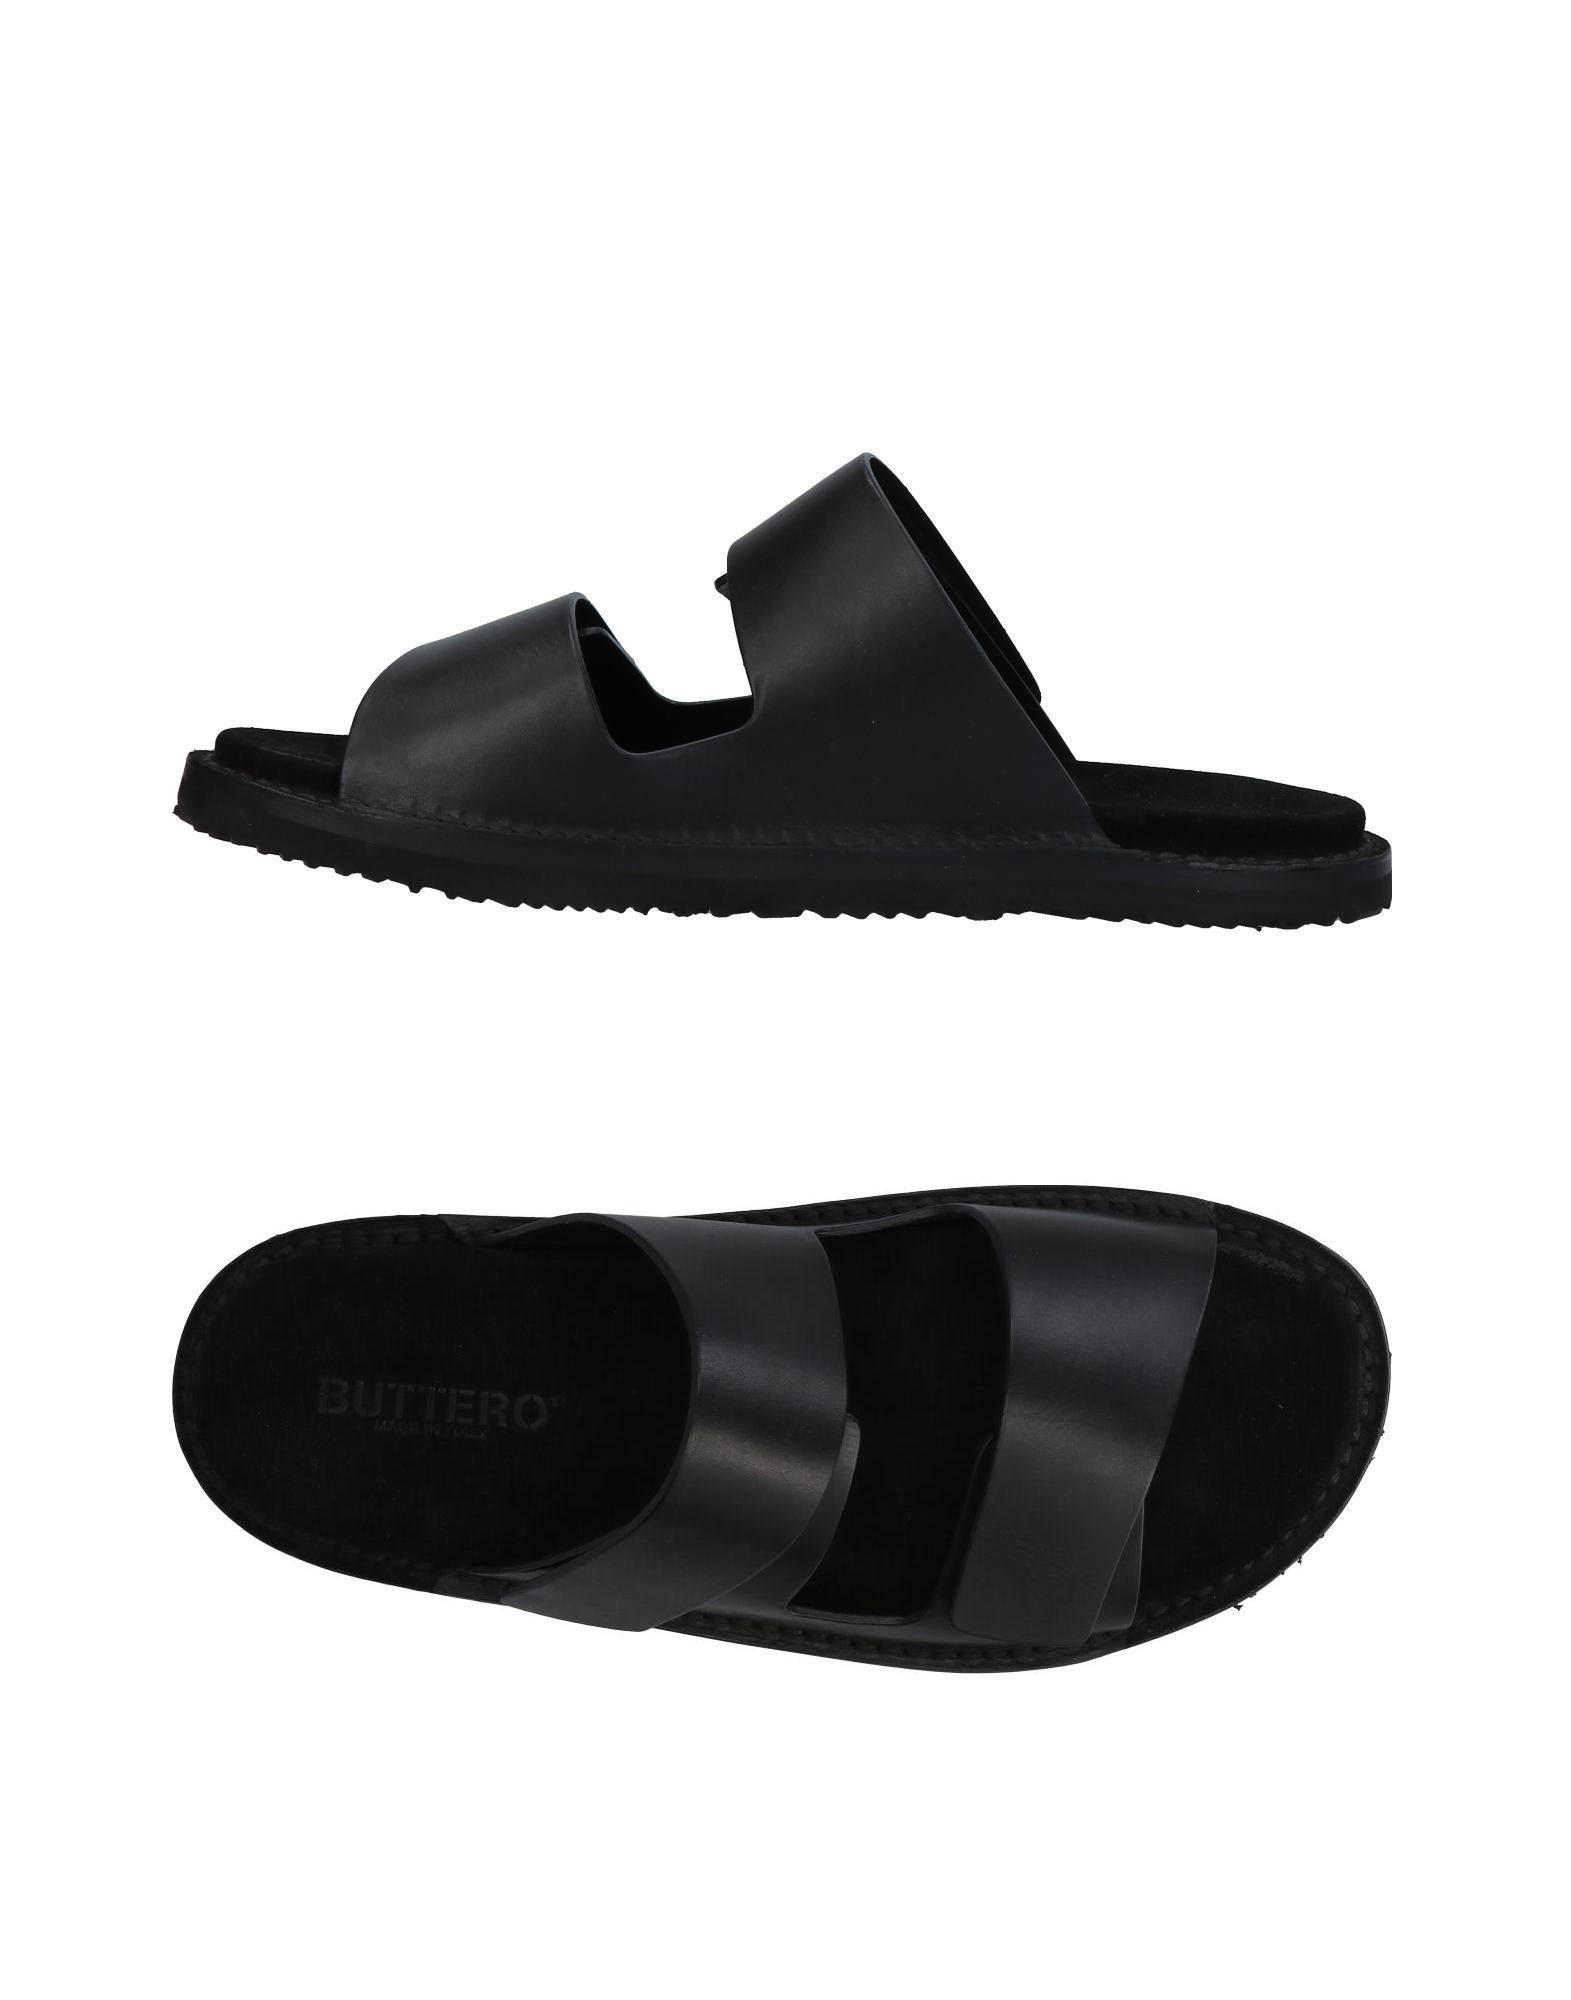 Buttero ® Sandals In Black